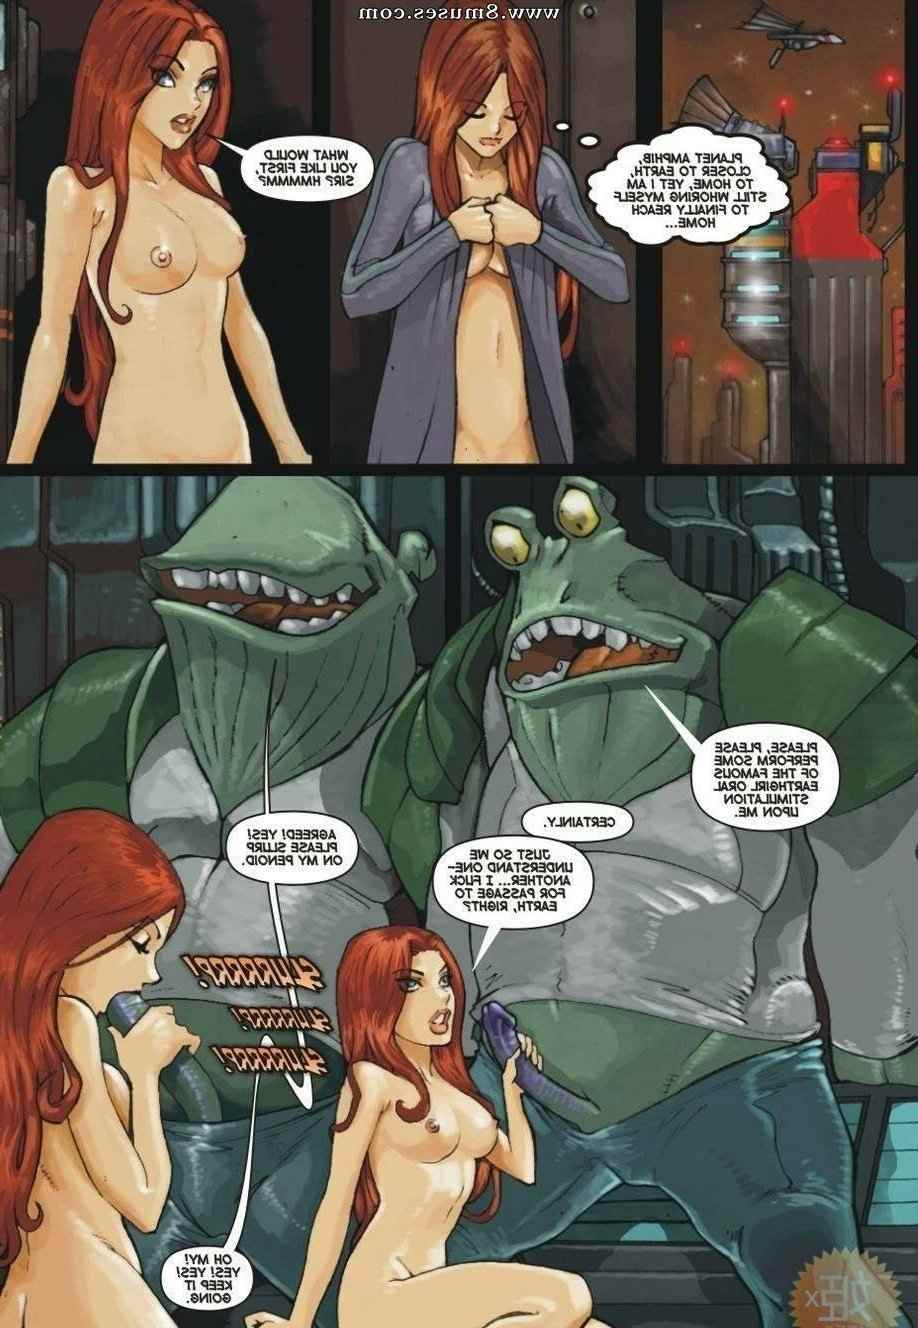 Central-Comics/Space-Babe-Central/Alien-Love-Toy Alien_Love_Toy__8muses_-_Sex_and_Porn_Comics_16.jpg